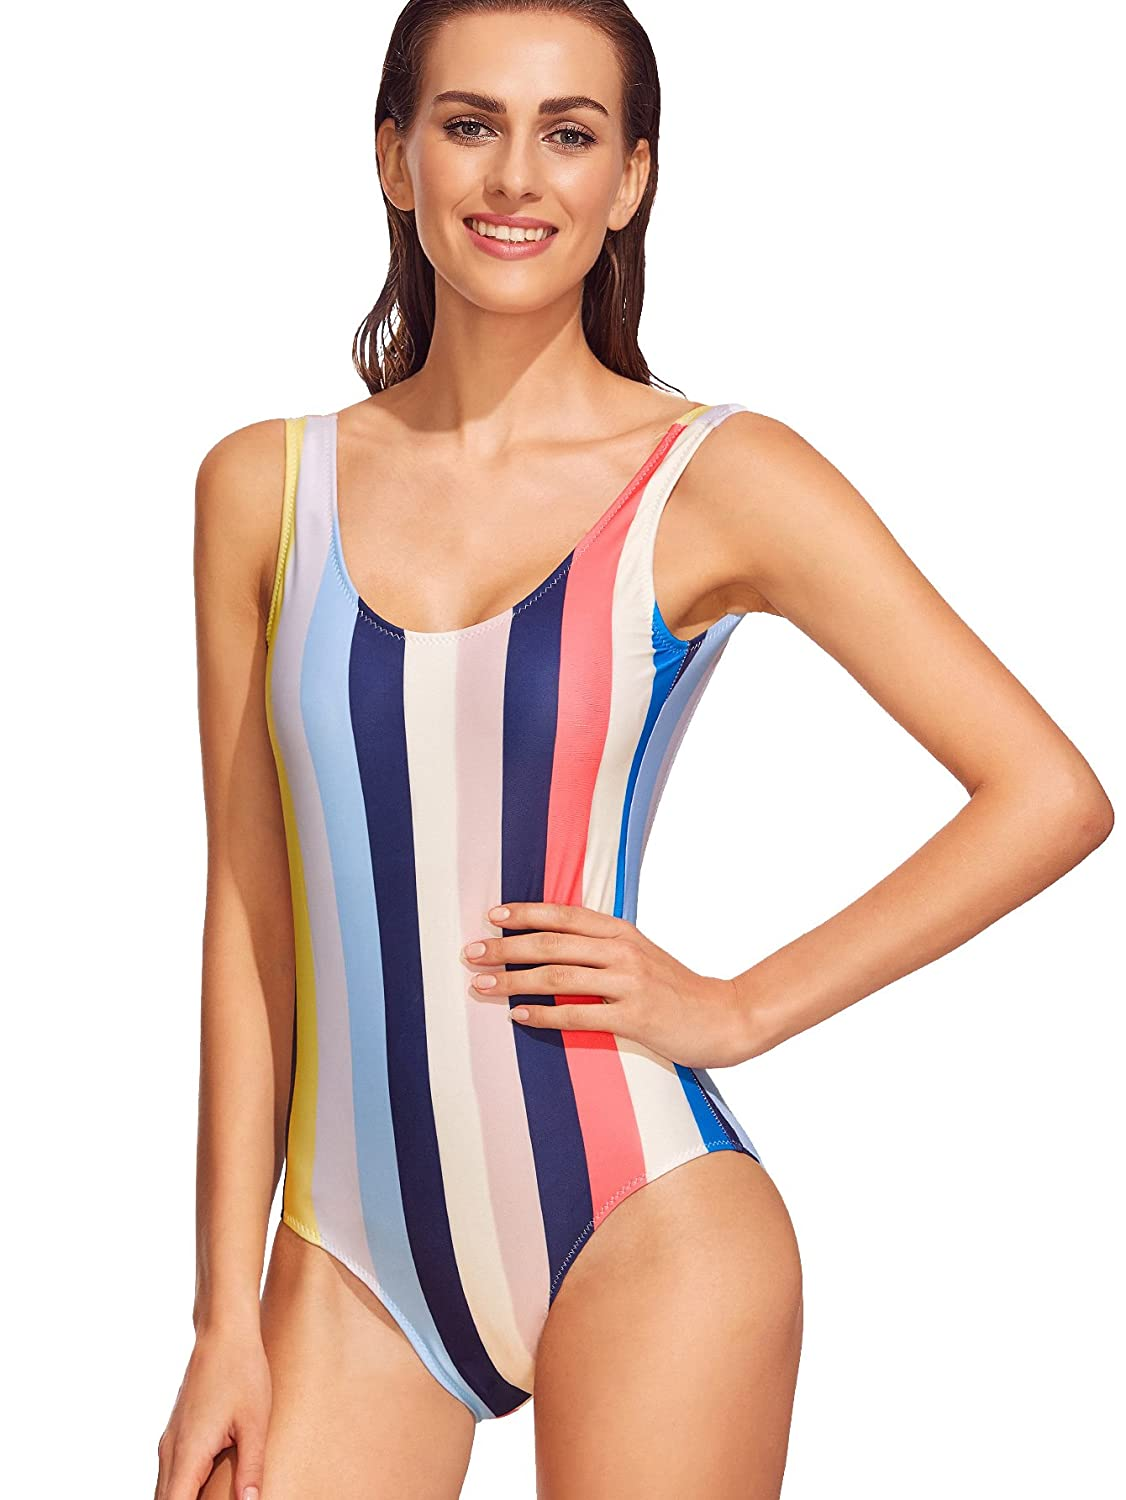 bf5b52c736 SweatyRocks Women s Sexy colorful Stripe High Cut Low Backless One Piece  Swimsuit at Amazon Women s Clothing store